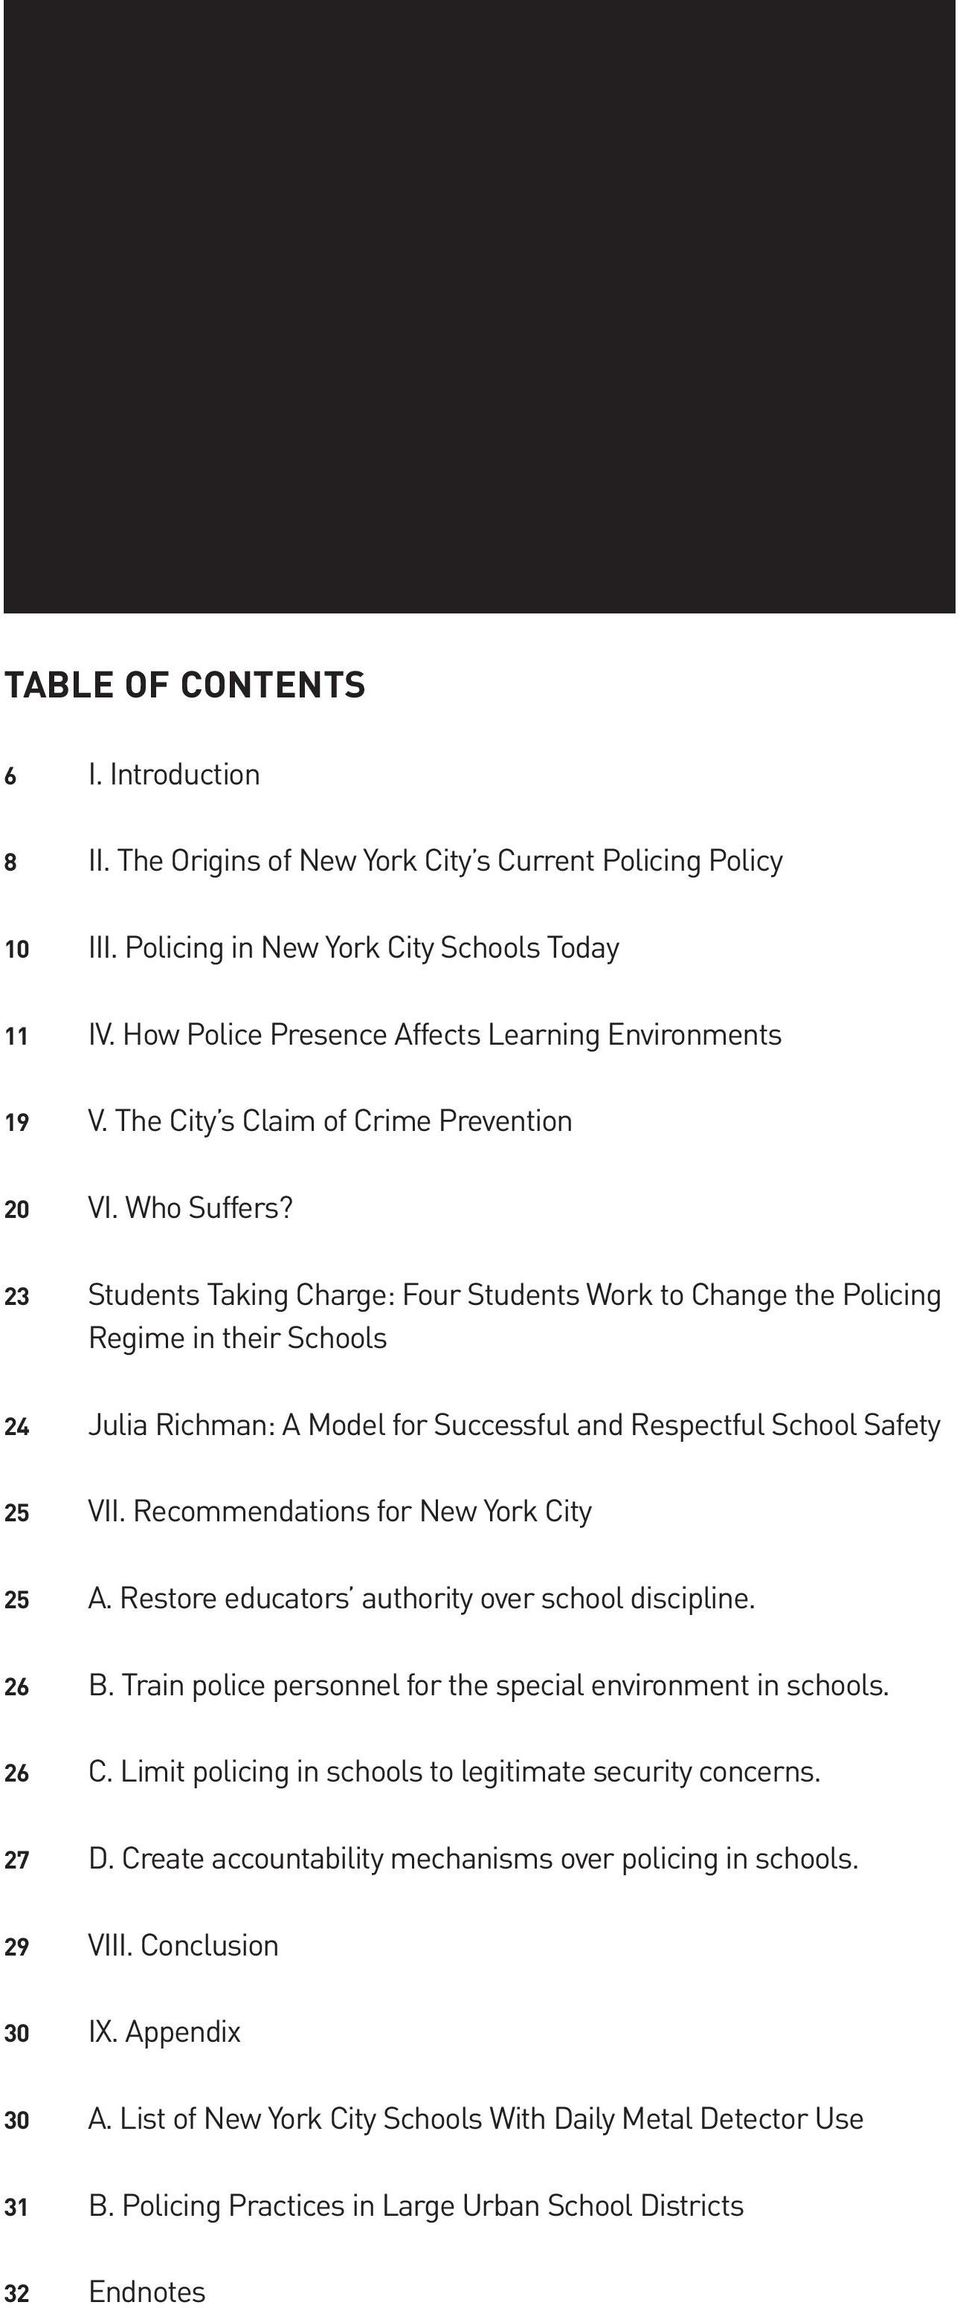 23 Students Taking Charge: Four Students Work to Change the Policing Regime in their Schools 24 Julia Richman: A Model for Successful and Respectful School Safety 25 VII.